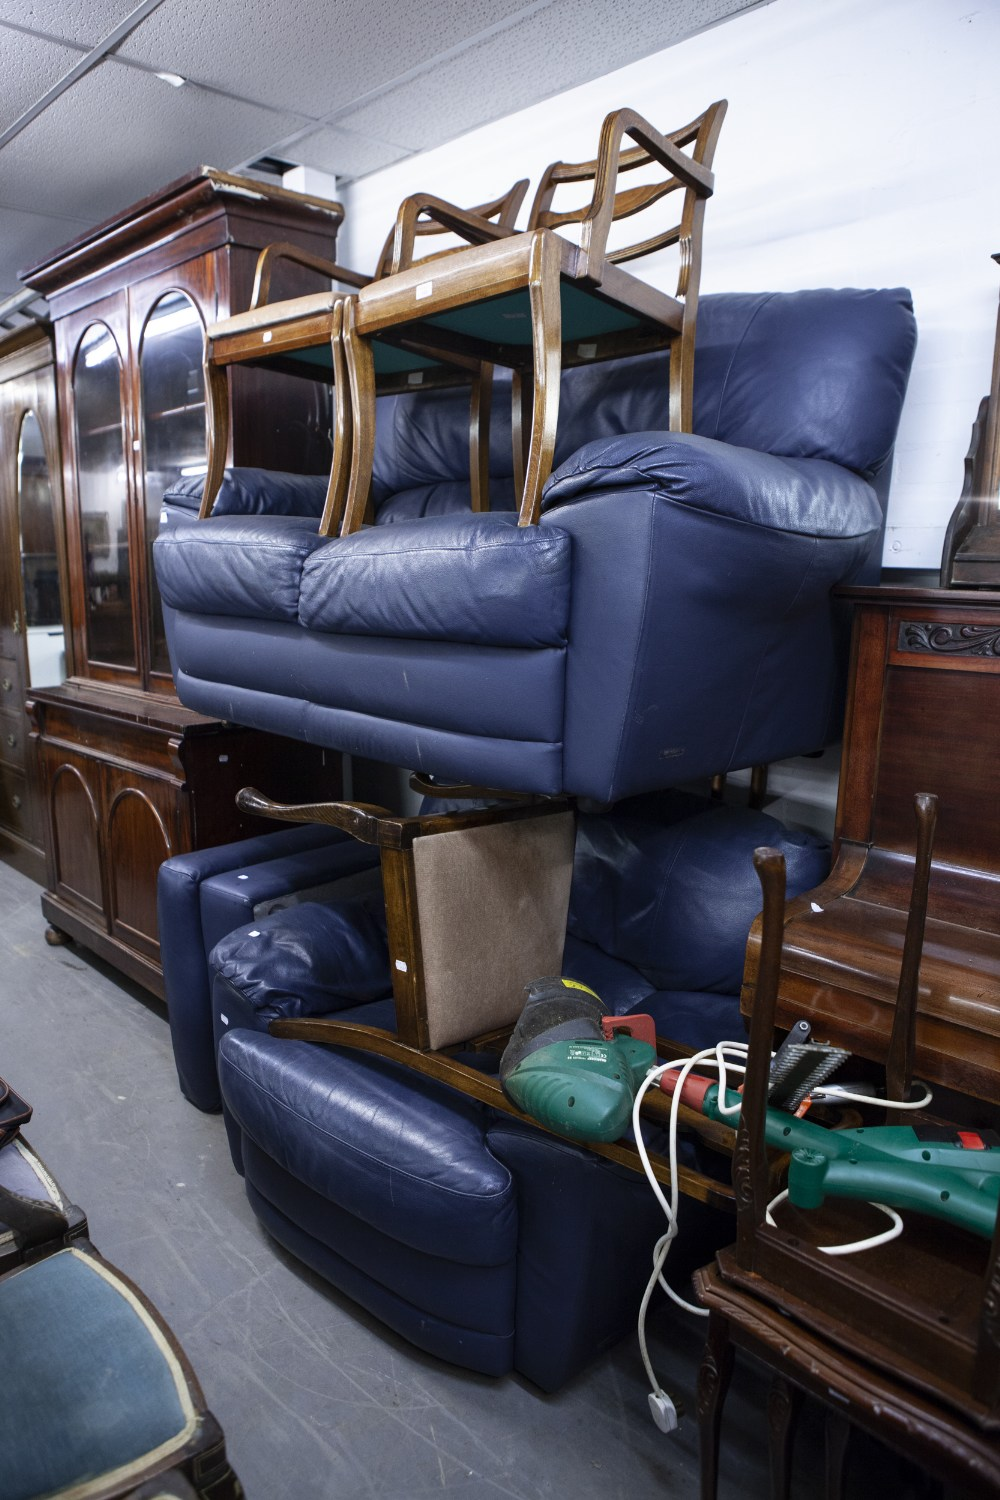 Lot 43 - A THREE PIECE LOUNGE SUITE IN BLUE HIDE LEATHER INCLUDING; TWO SEATER SETTEE, ARMCHAIR AND FOOTSTOOL